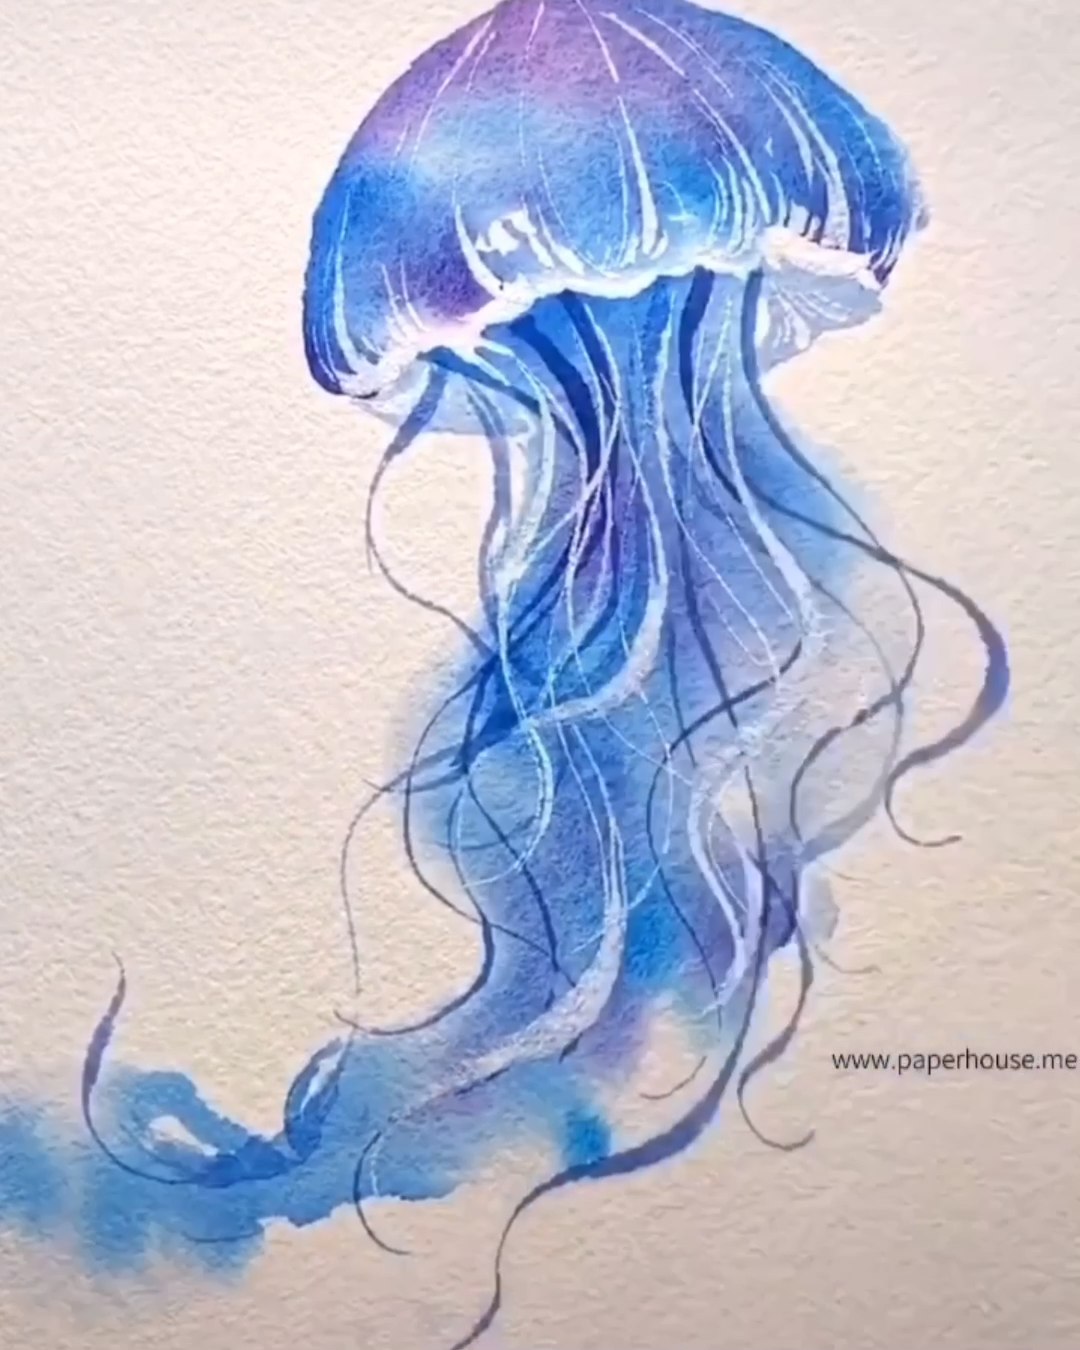 Paul Rubens Jellyfish Paintings👉www.paperhouse.me💝